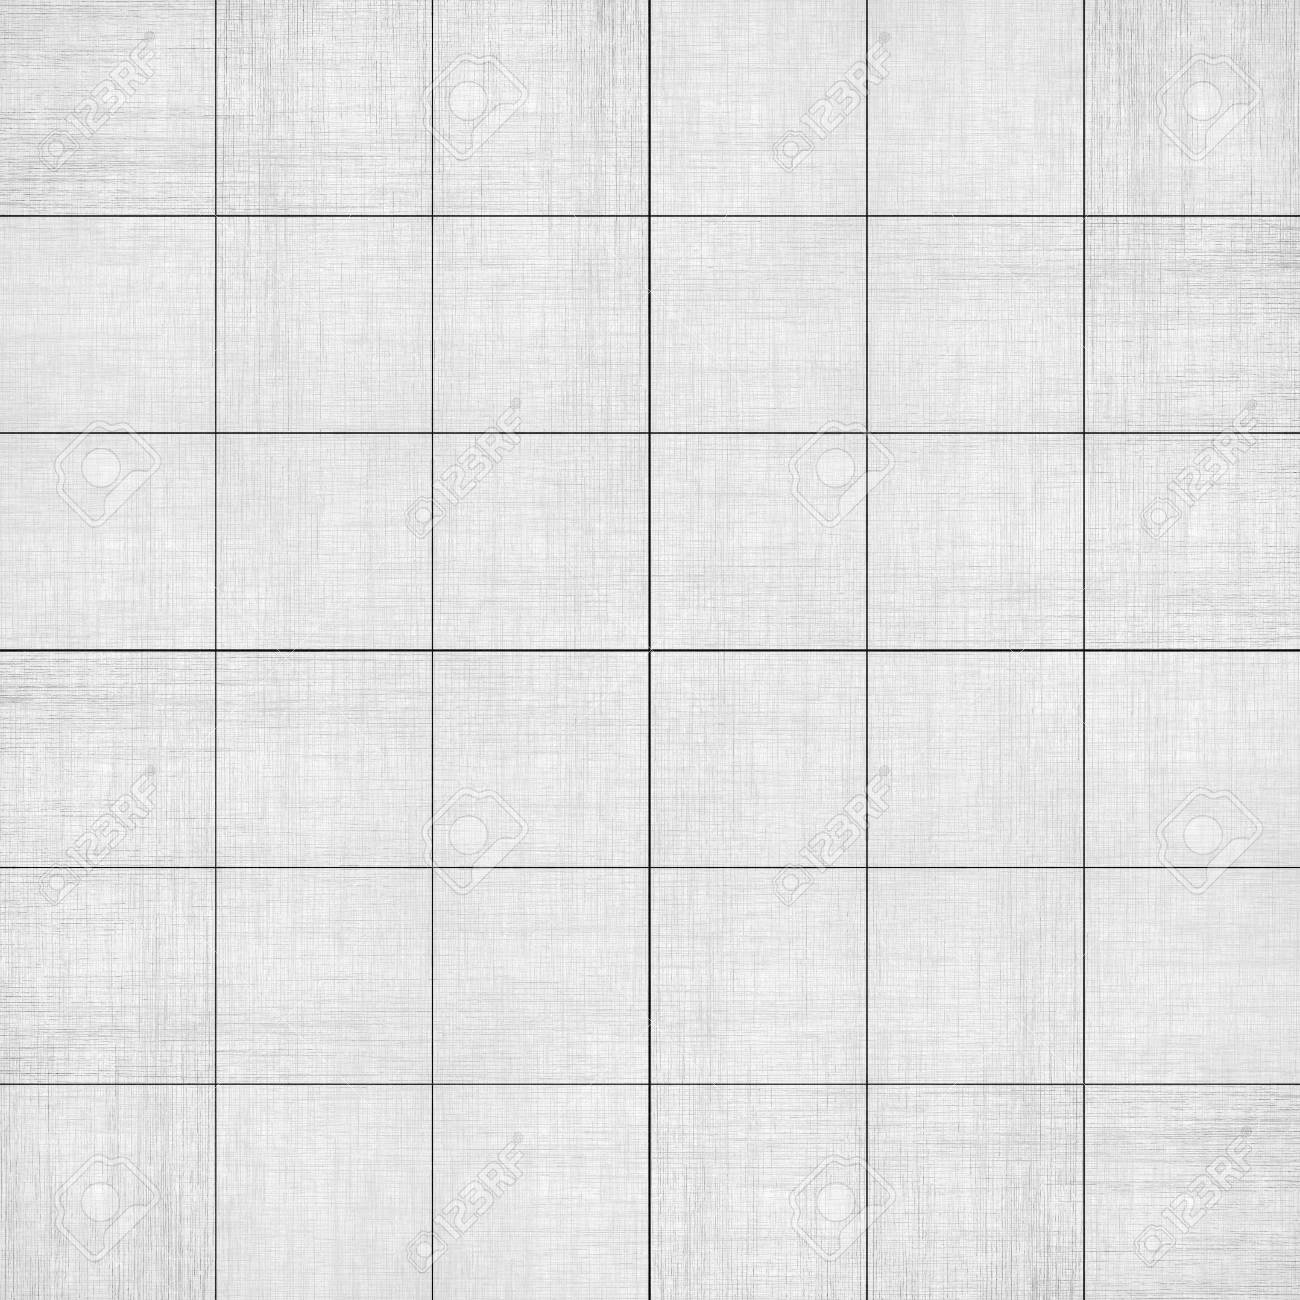 Wall Grid Gray Wooden Wall Grid Texture Background